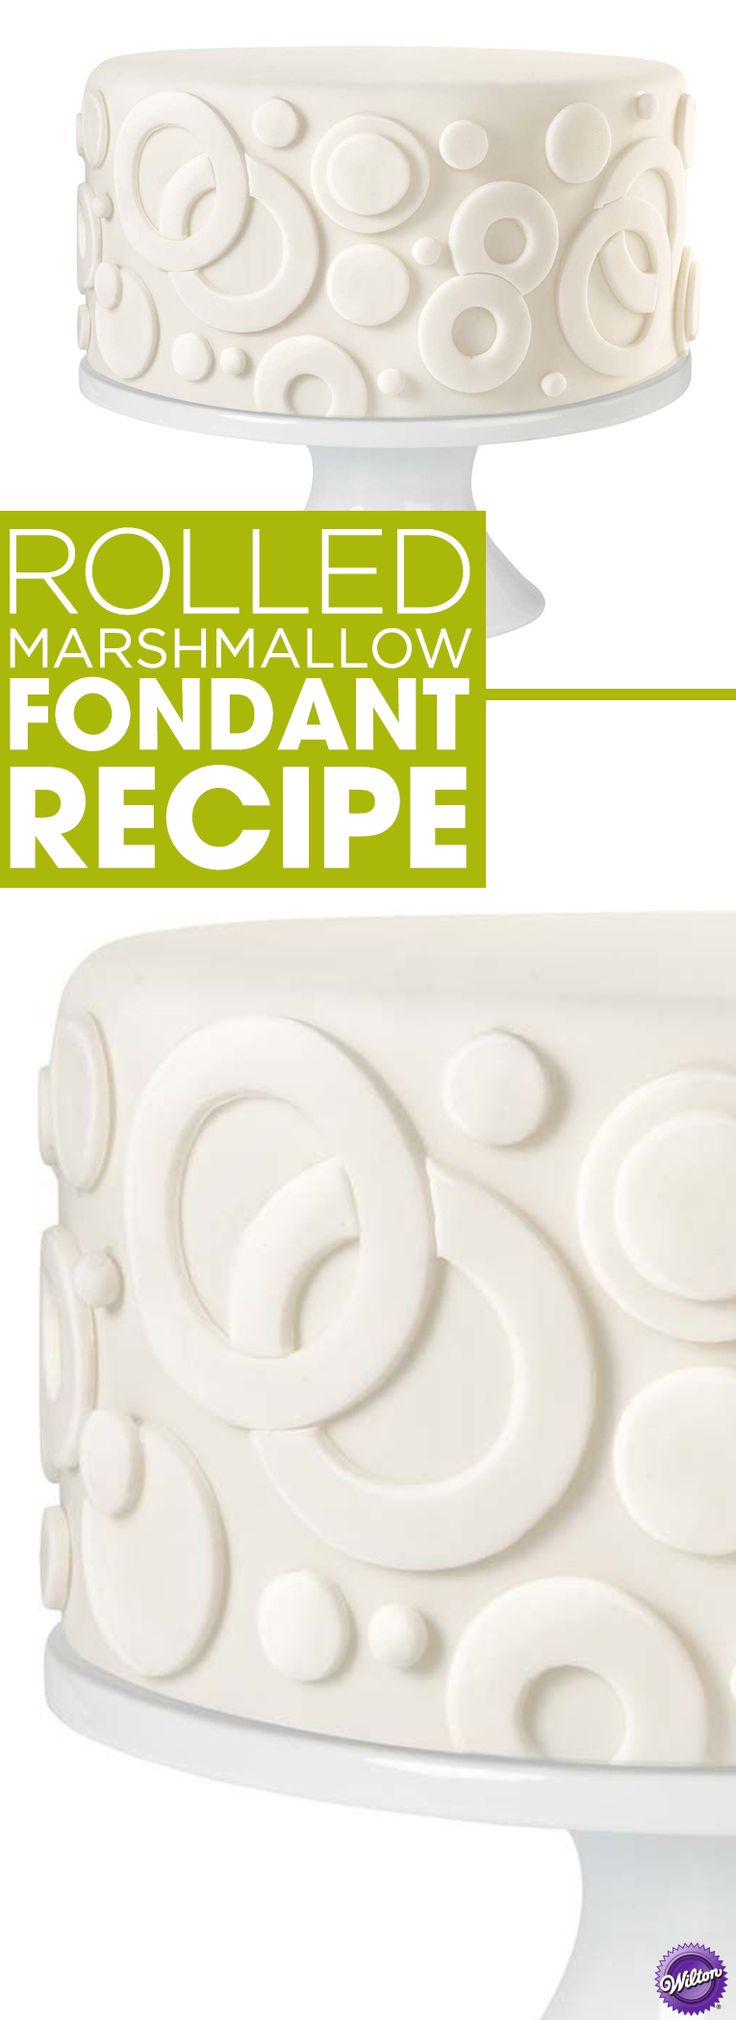 Learn how to make rolled marshmallow fondant. This simple fondant recipe uses ingredients which are probably already in your pantry. It's softer than our standard fondant recipe with a very sweet taste that kids love.